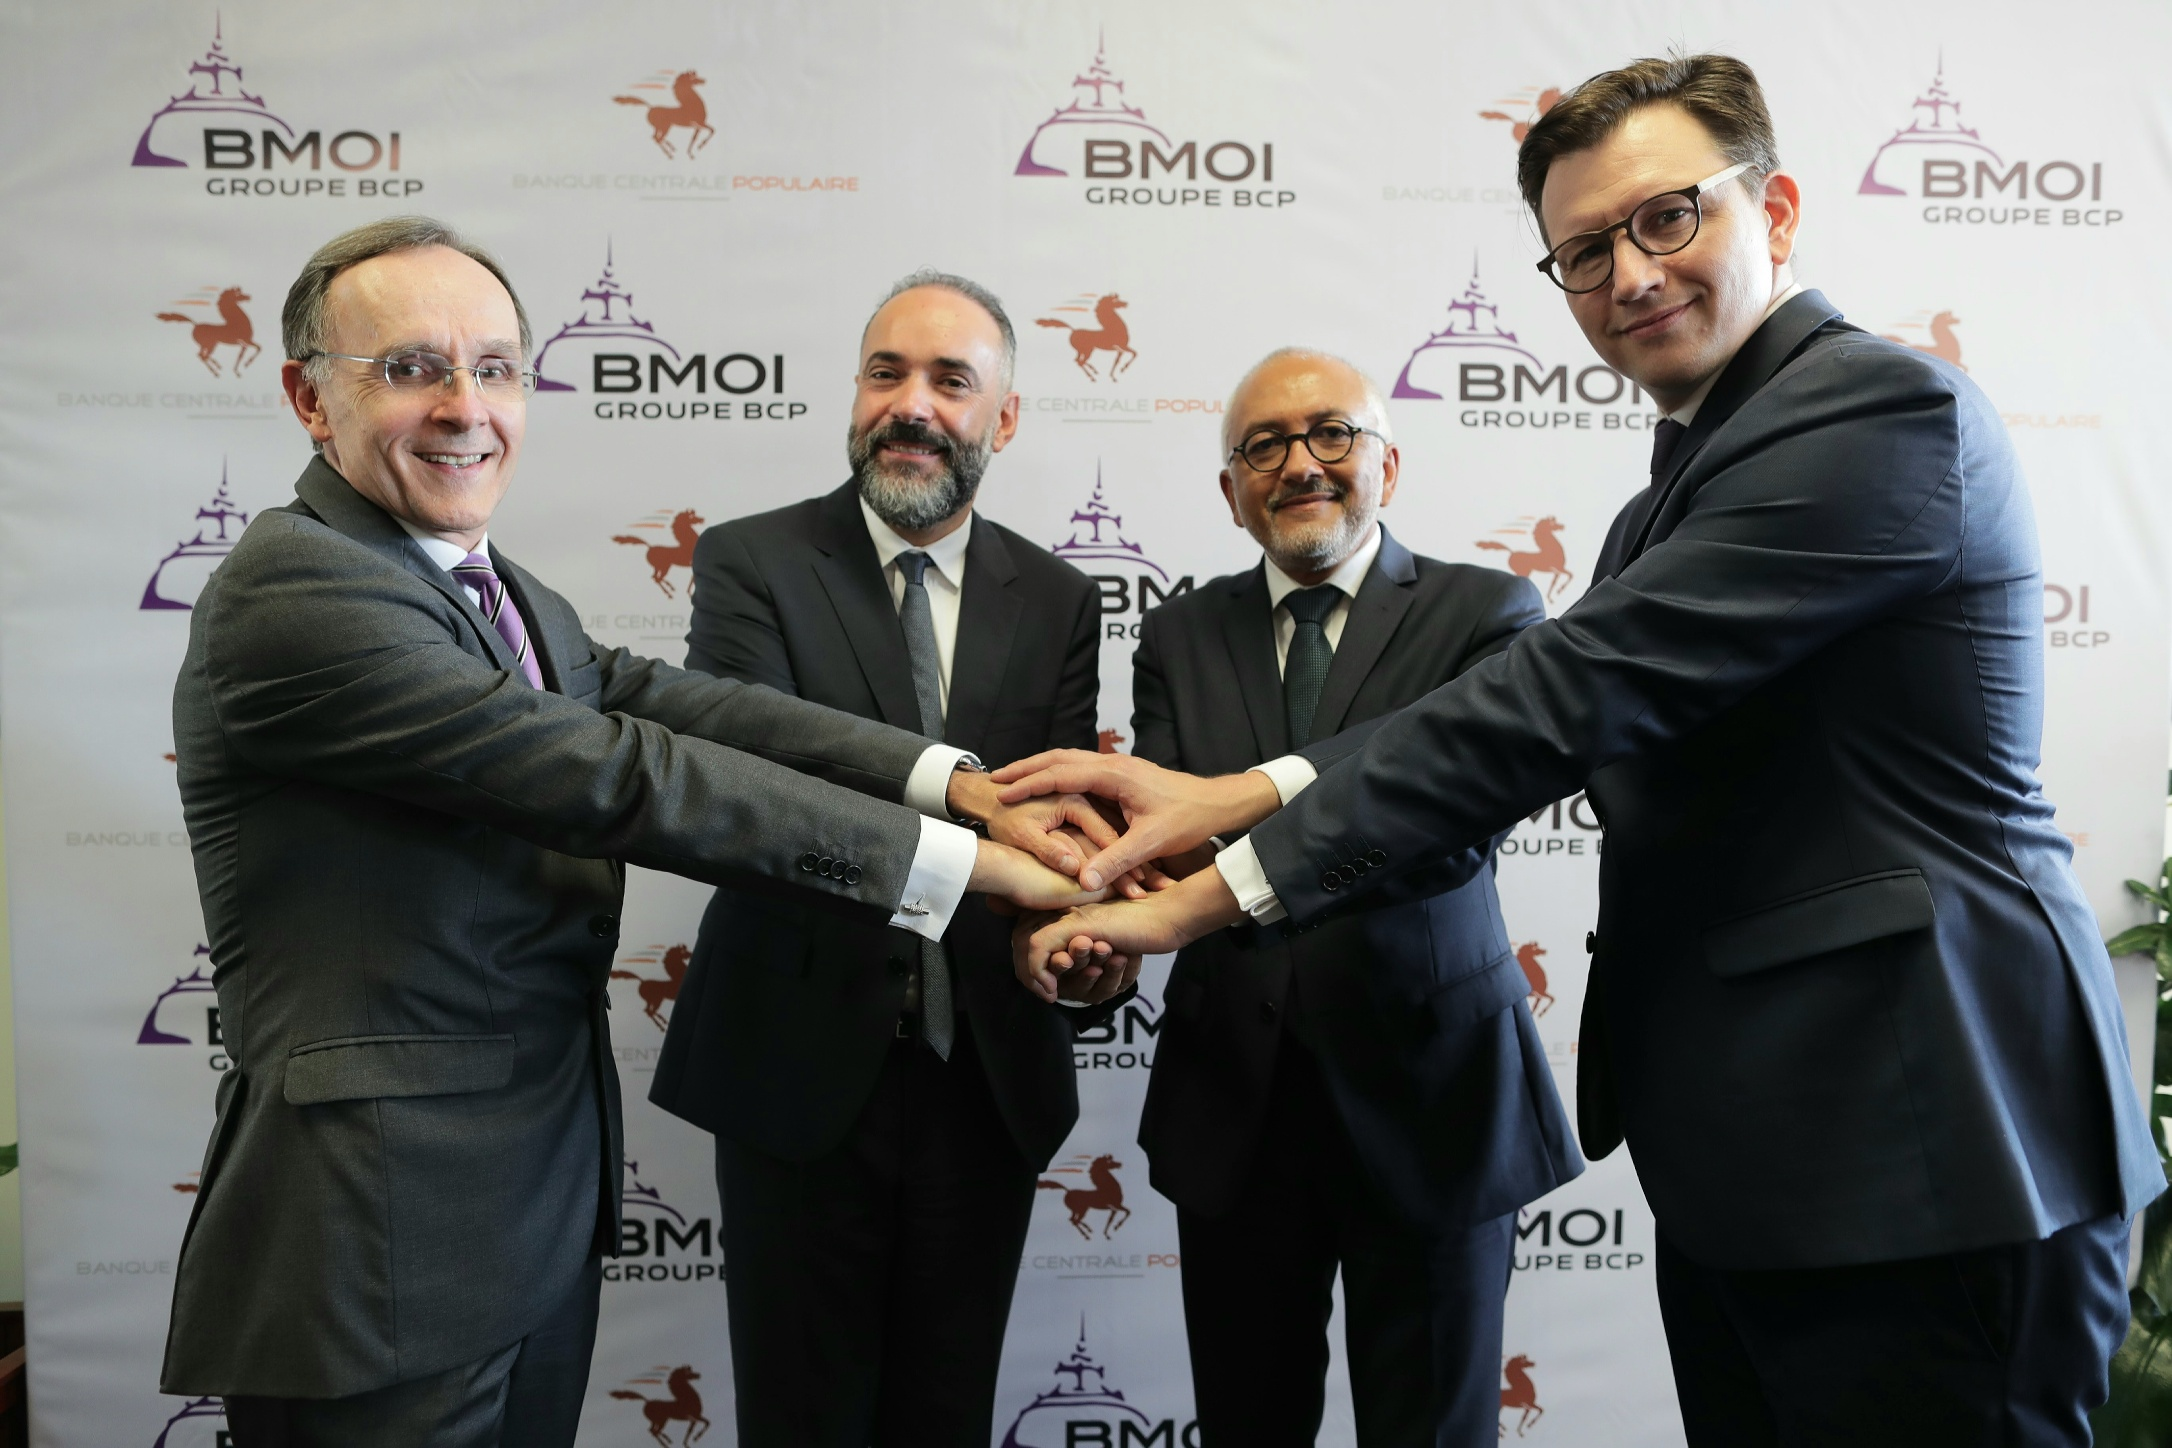 Madagascar : La BCP finalise l'acquisition de la BMOI